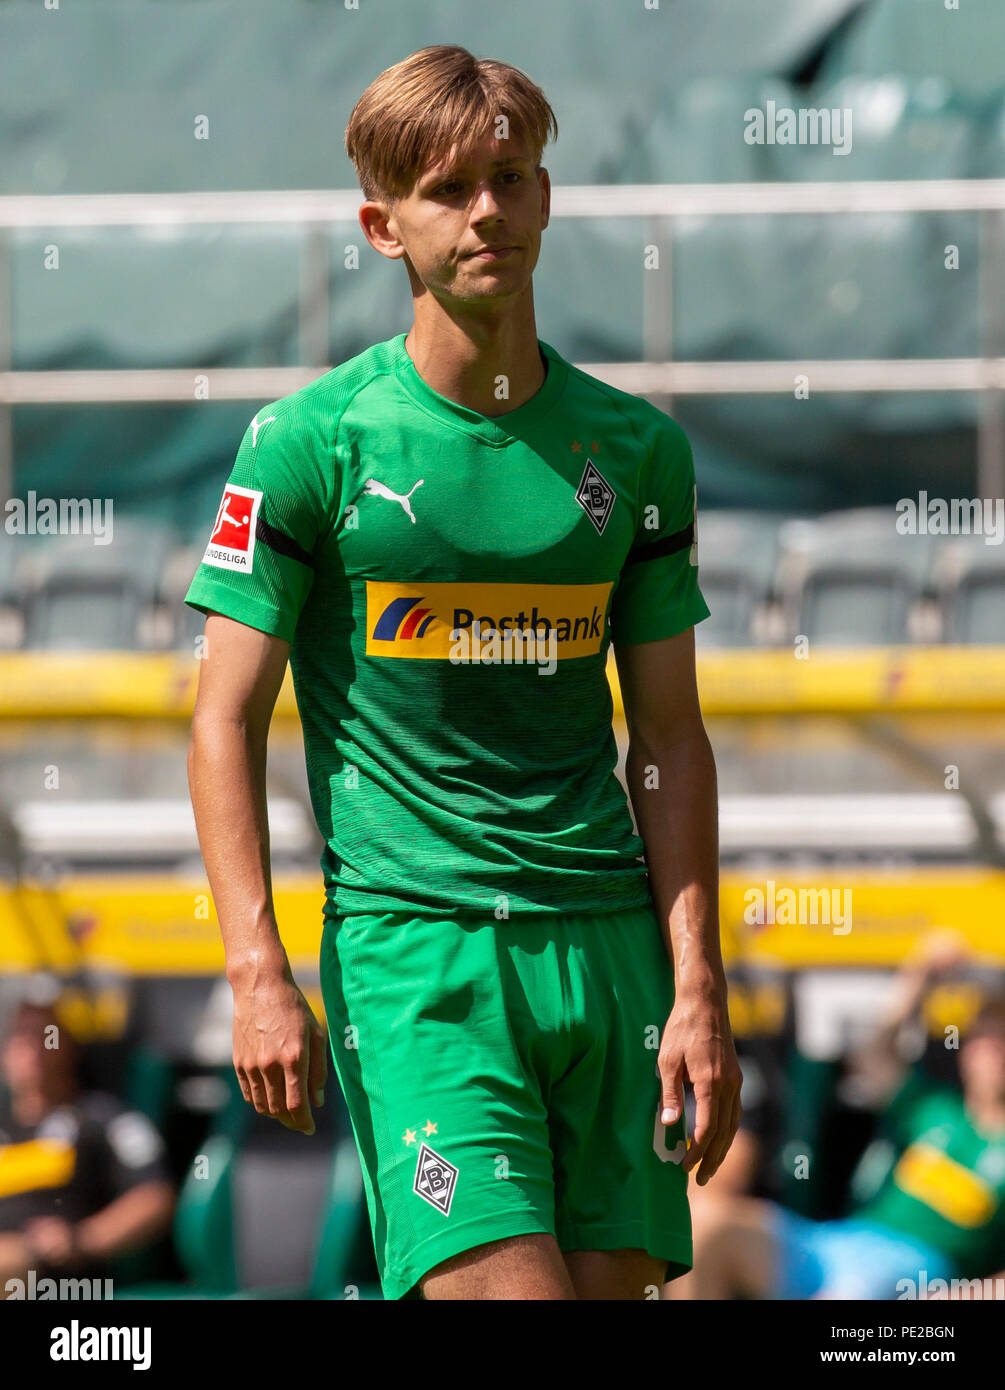 Moenchengladbach, Germany August 12 2018, friendly match, Borussia Moenchengladbach vs FC Wegberg-Beeck: Torben Muesel (BMG) schaut.                Credit: Juergen Schwarz/Alamy Live News - Stock Image